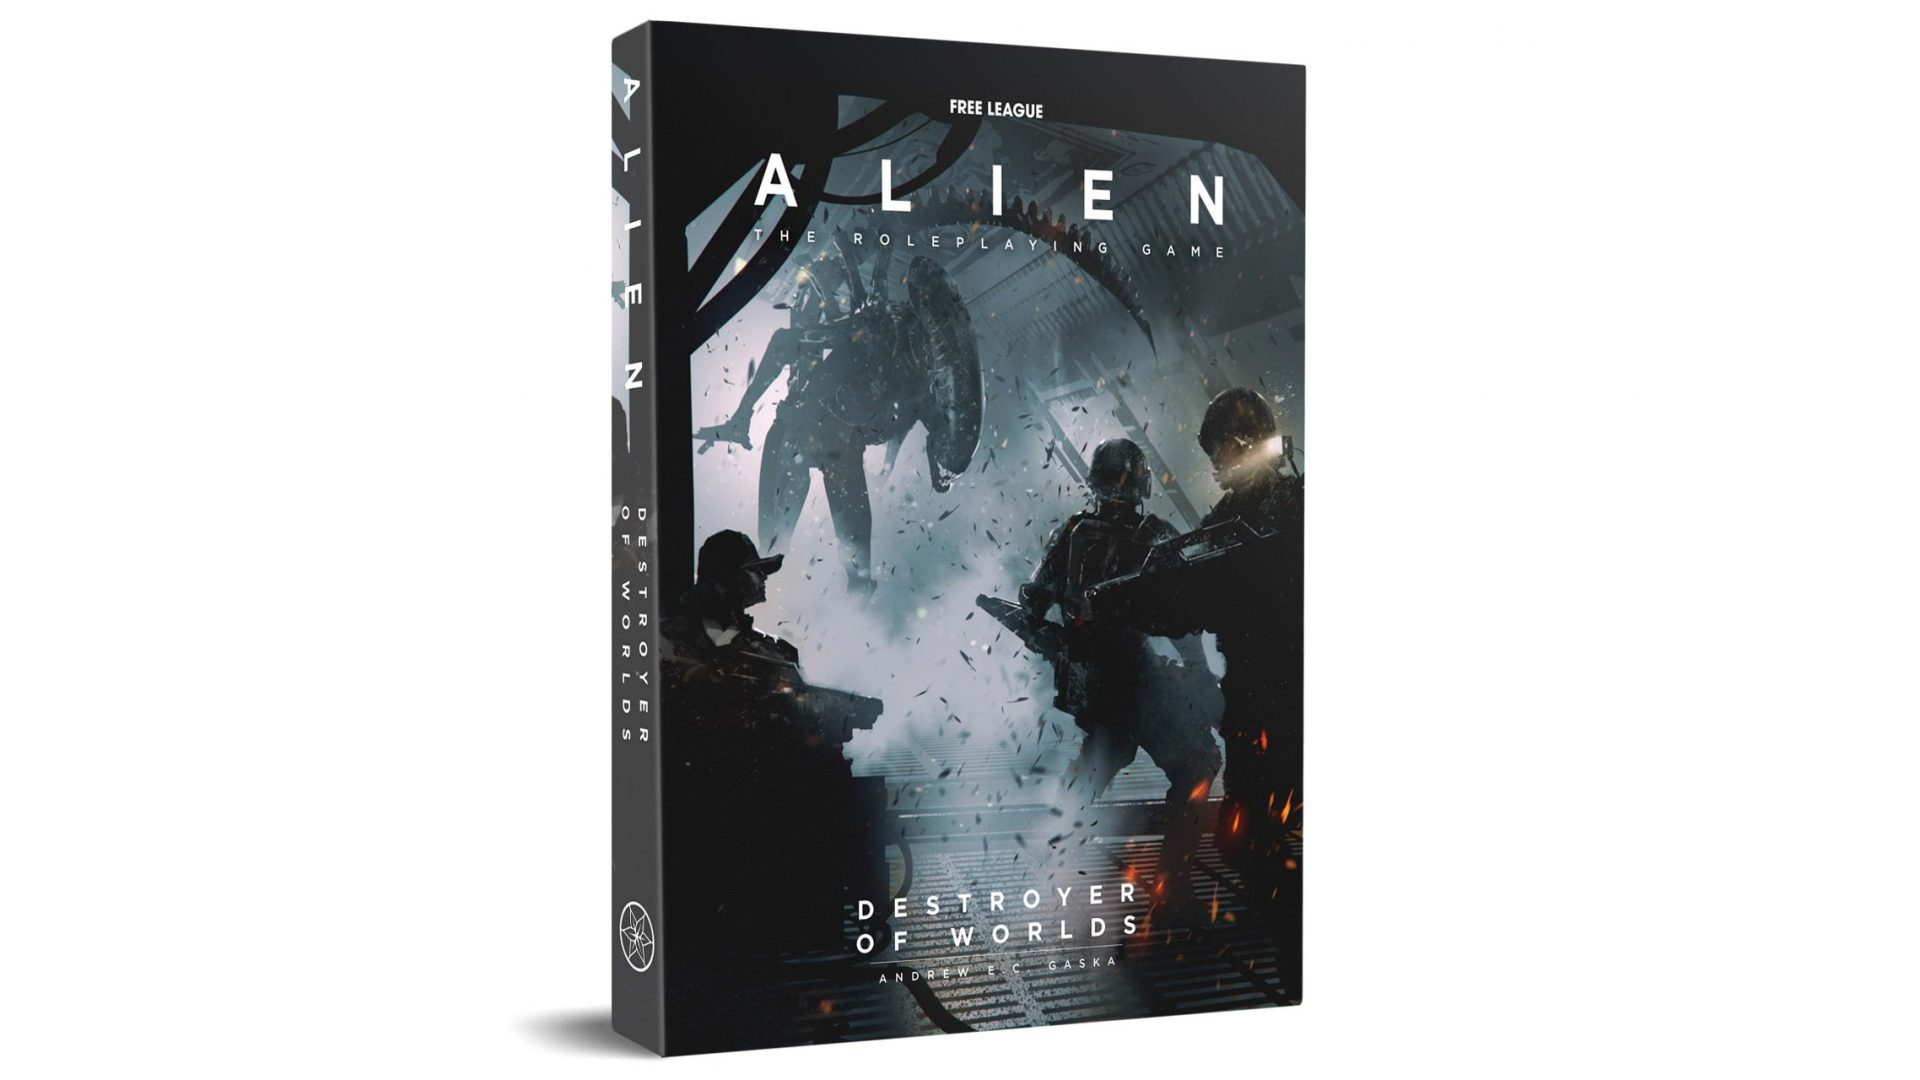 Alien, The Roleplaying Game